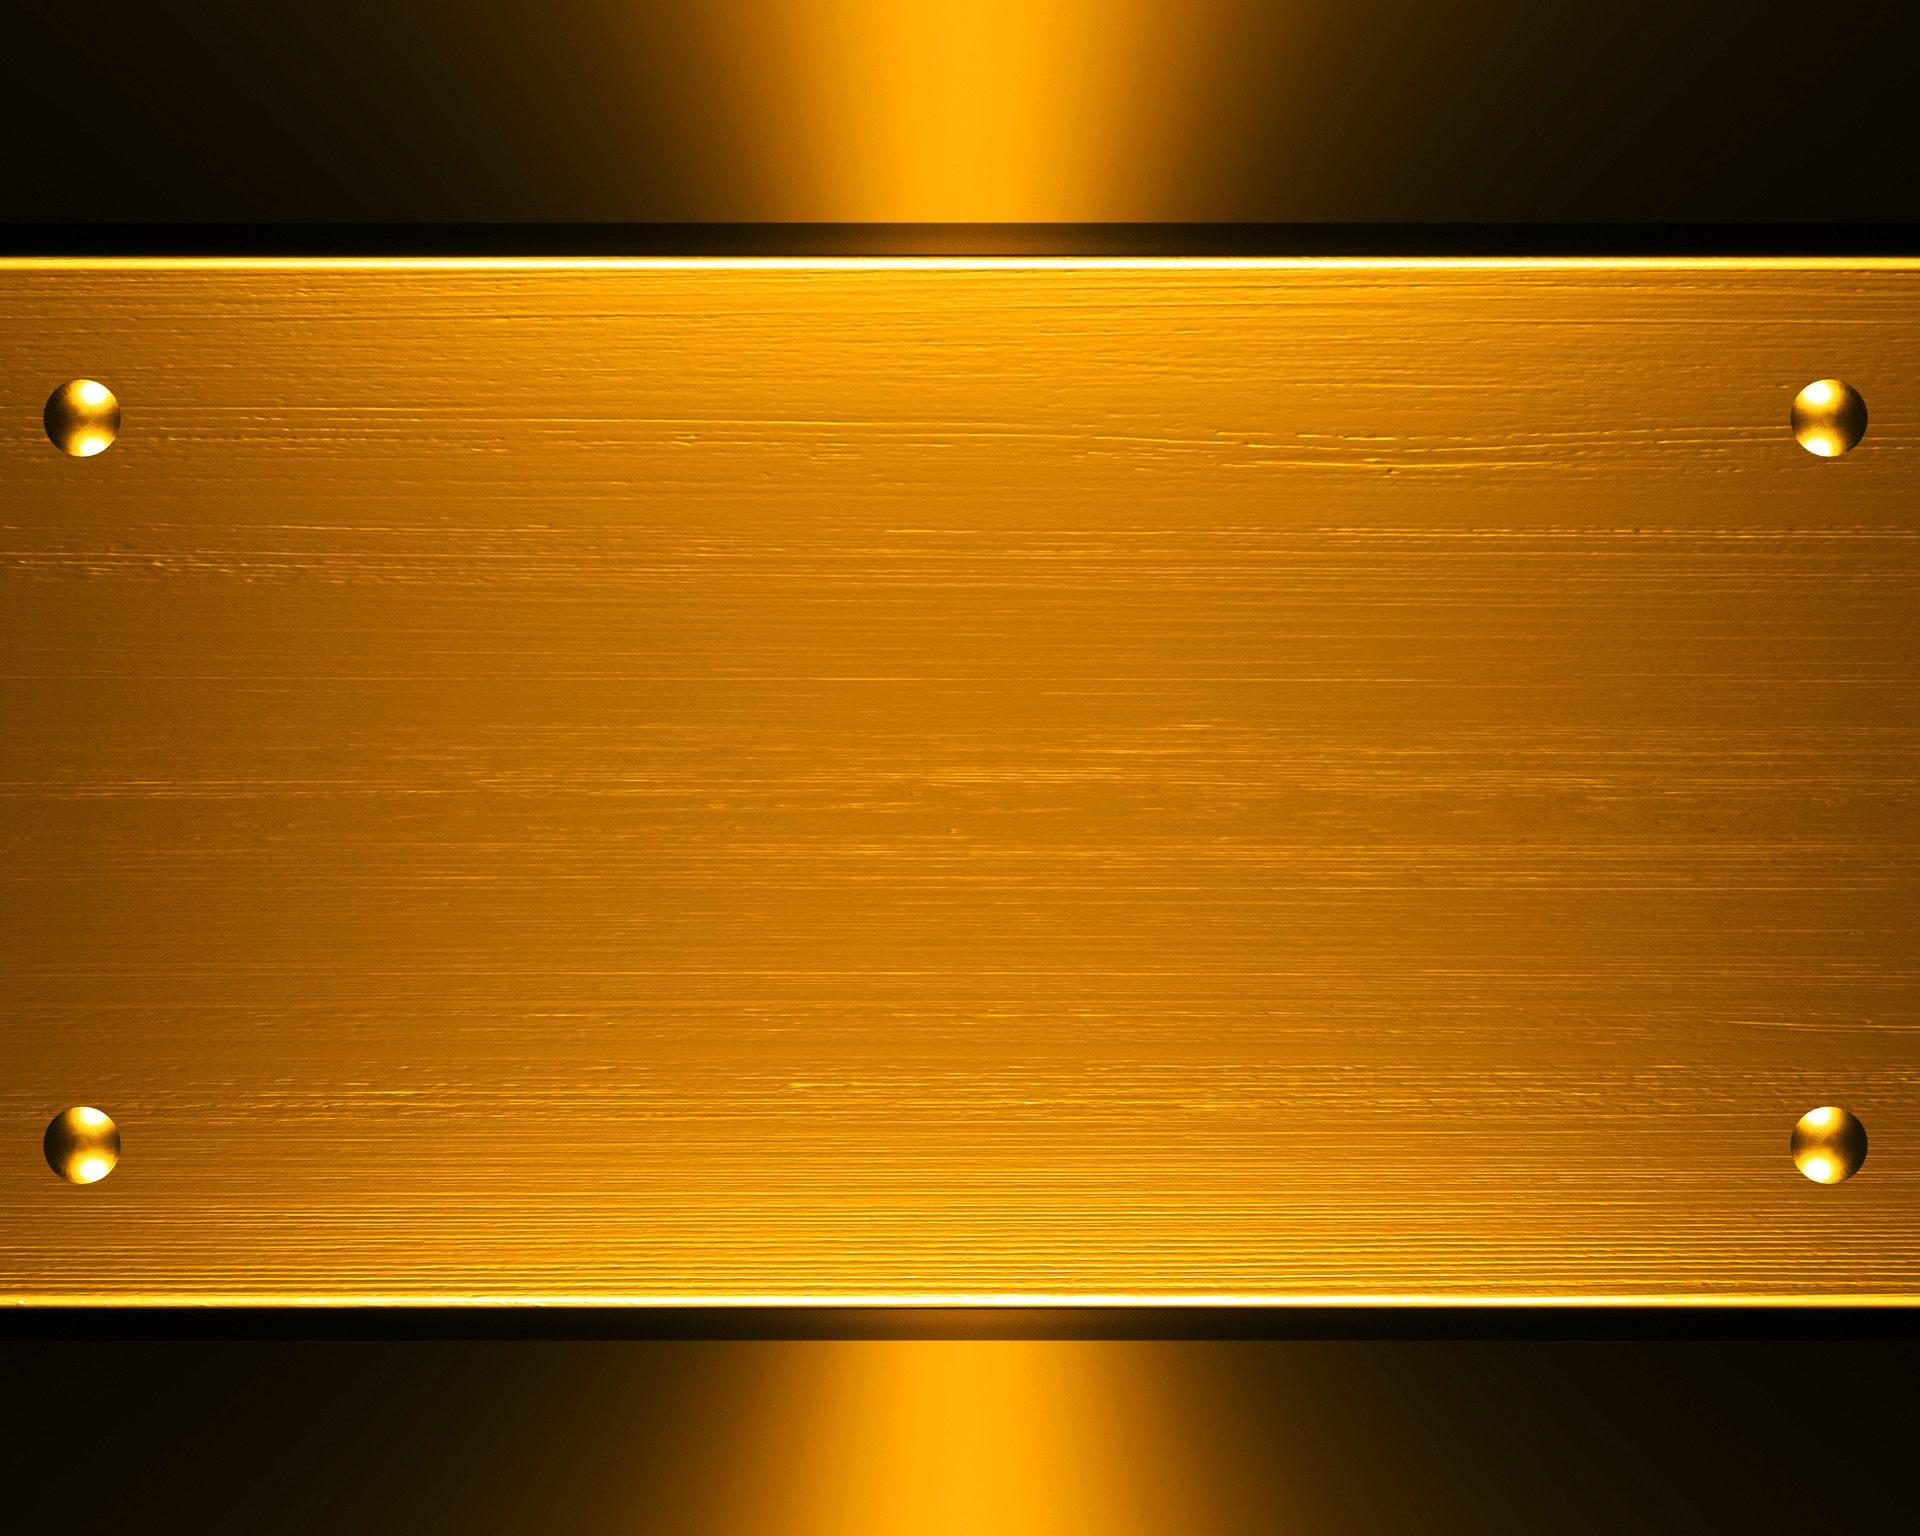 Gold Background Wallpaper 56 Images